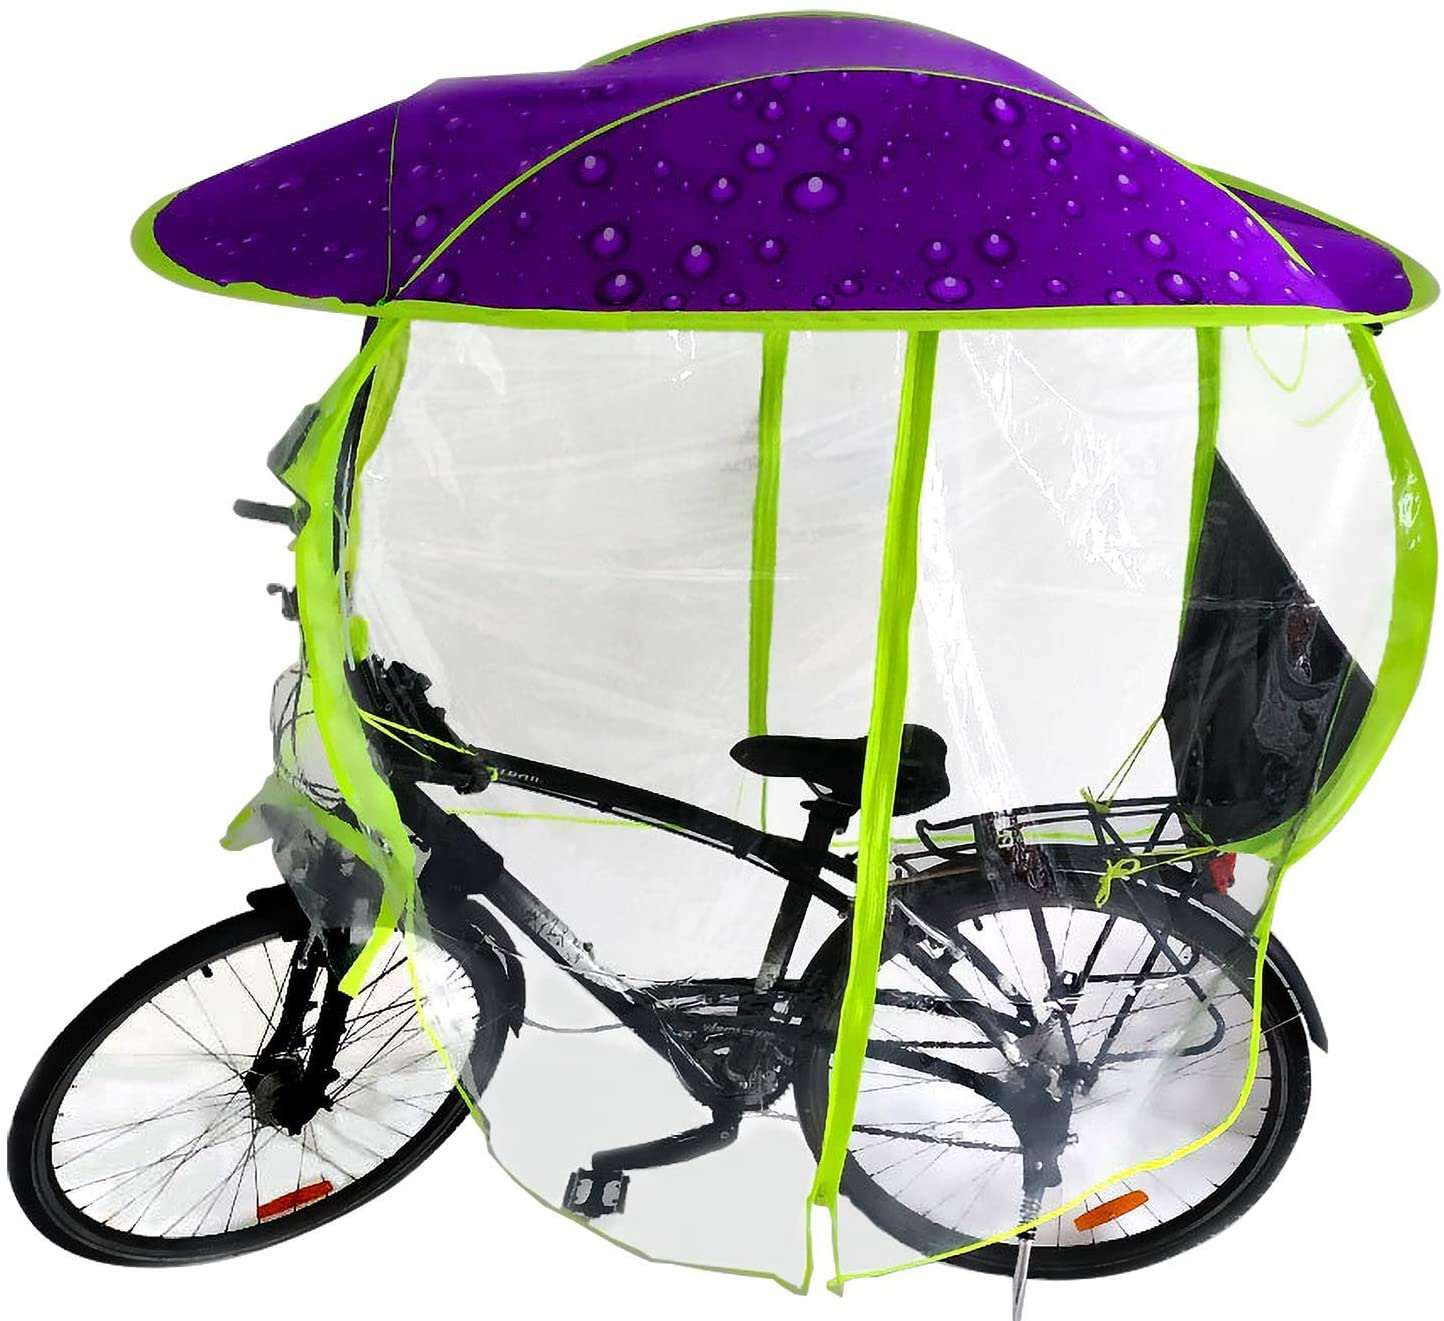 New Style Full Covered Bike Umbrella Outdoor Windproof Sunshade Cover  Bicycle Umbrella Rainproof For Outside Sun And Rainny Day - Buy New Style  Full Covered Bike Umbrella,Outdoor Windproof Sunshade Cover Bicycle Umbrella ,Rainproof